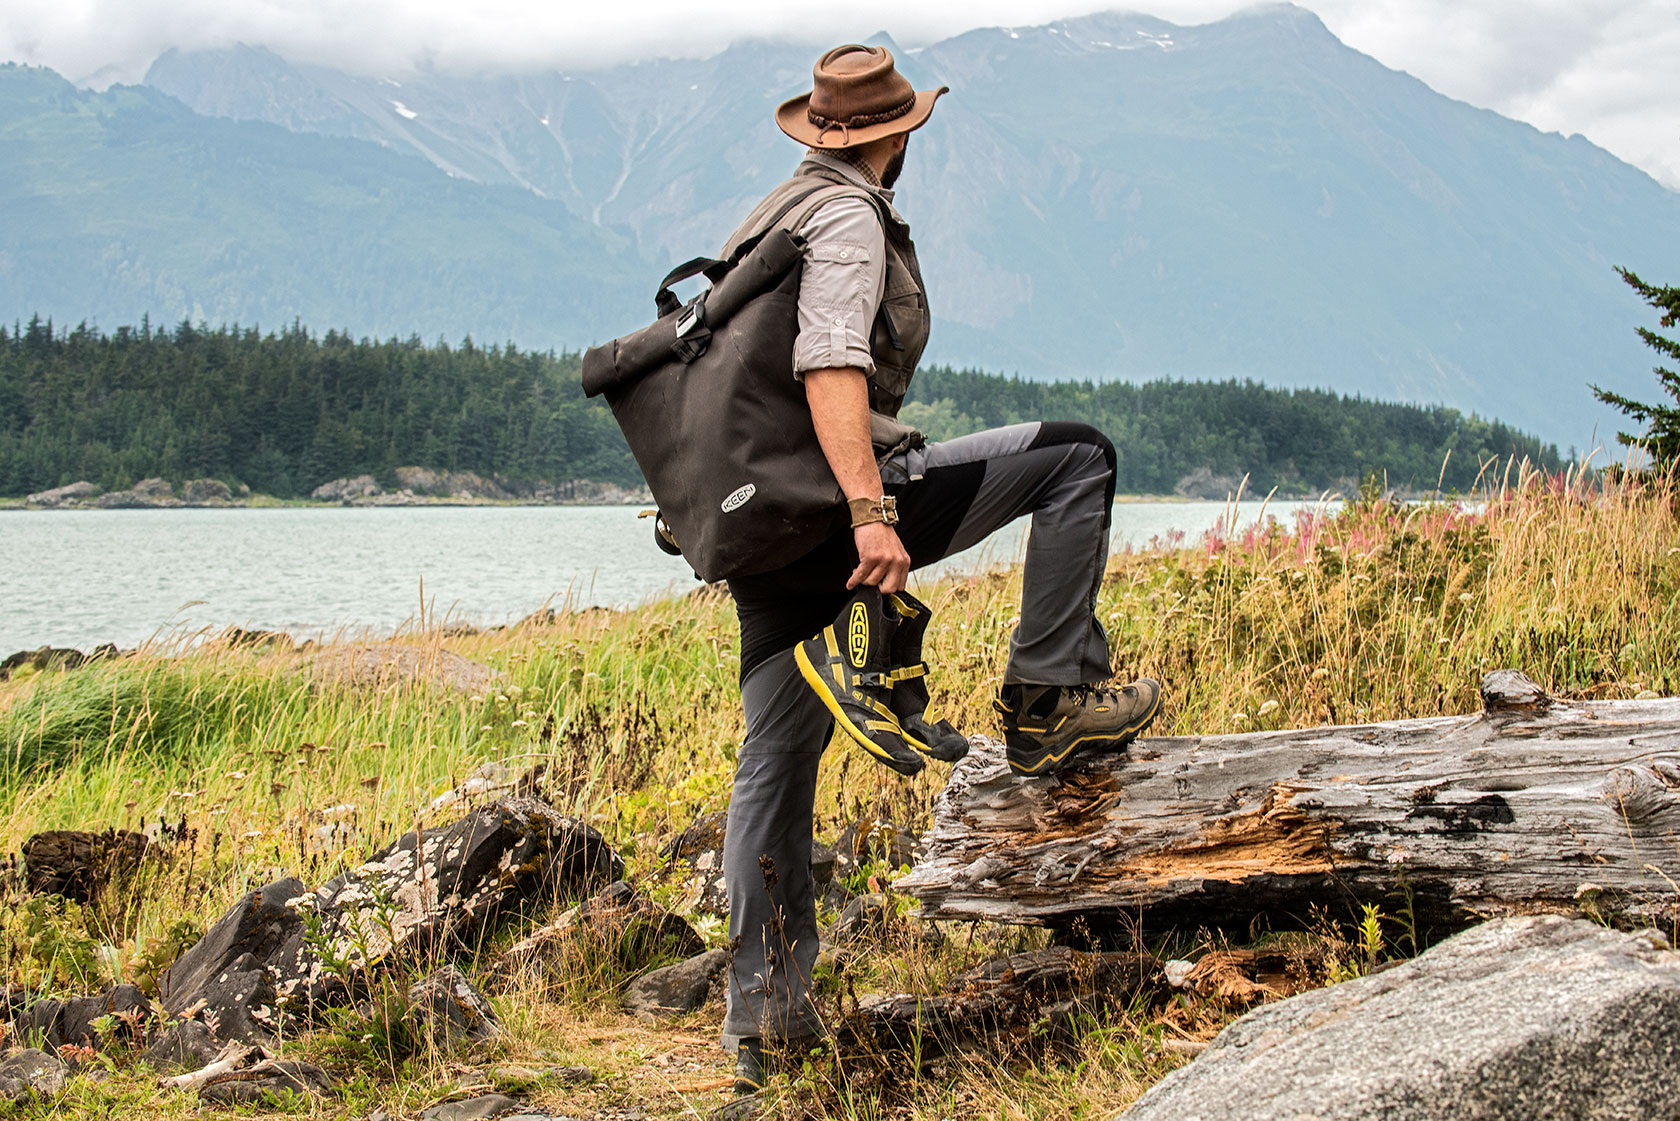 austin-trigg-brave-wilderness-alaska-BW-Coyote-Keen-Product-water-shoes-bag-Chilkat-Park.jpg